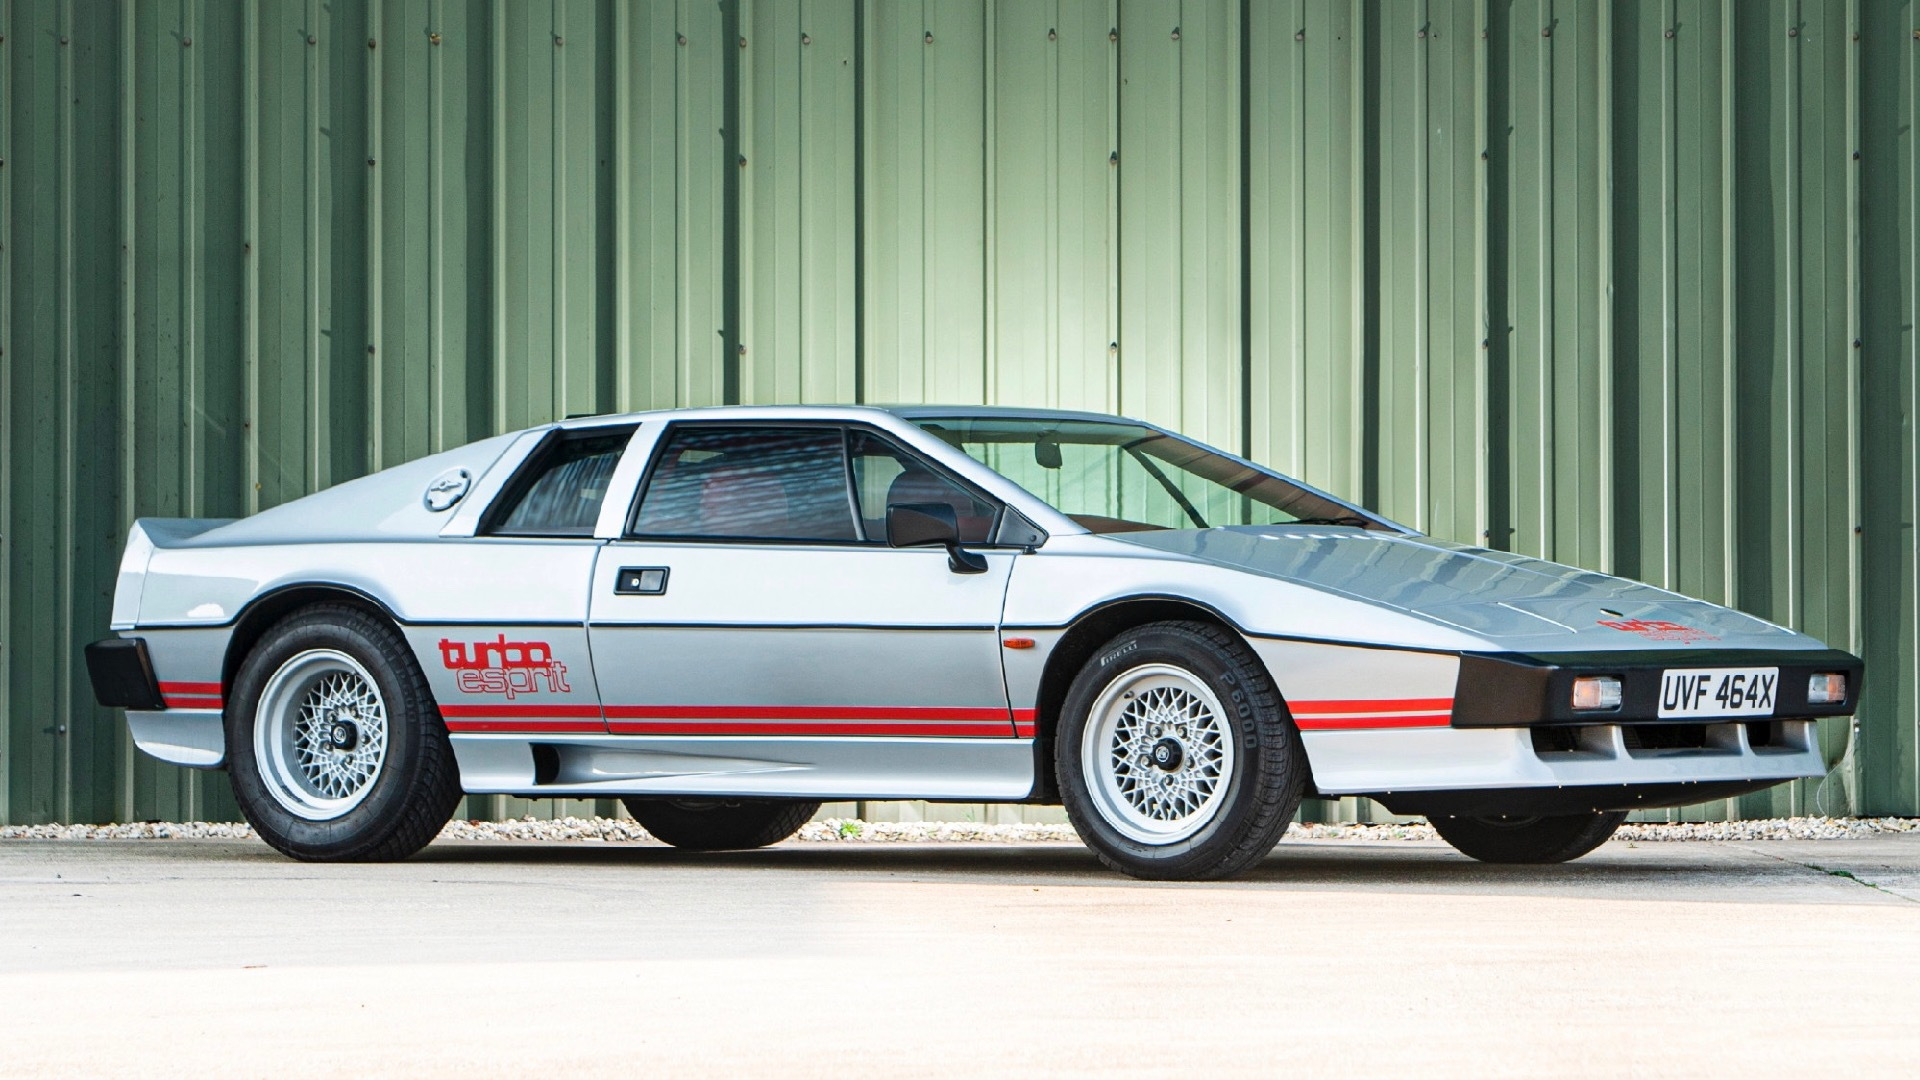 1981 Lotus Esprit Turbo owned by Colin Chapman (Photo by Mark Donaldson)